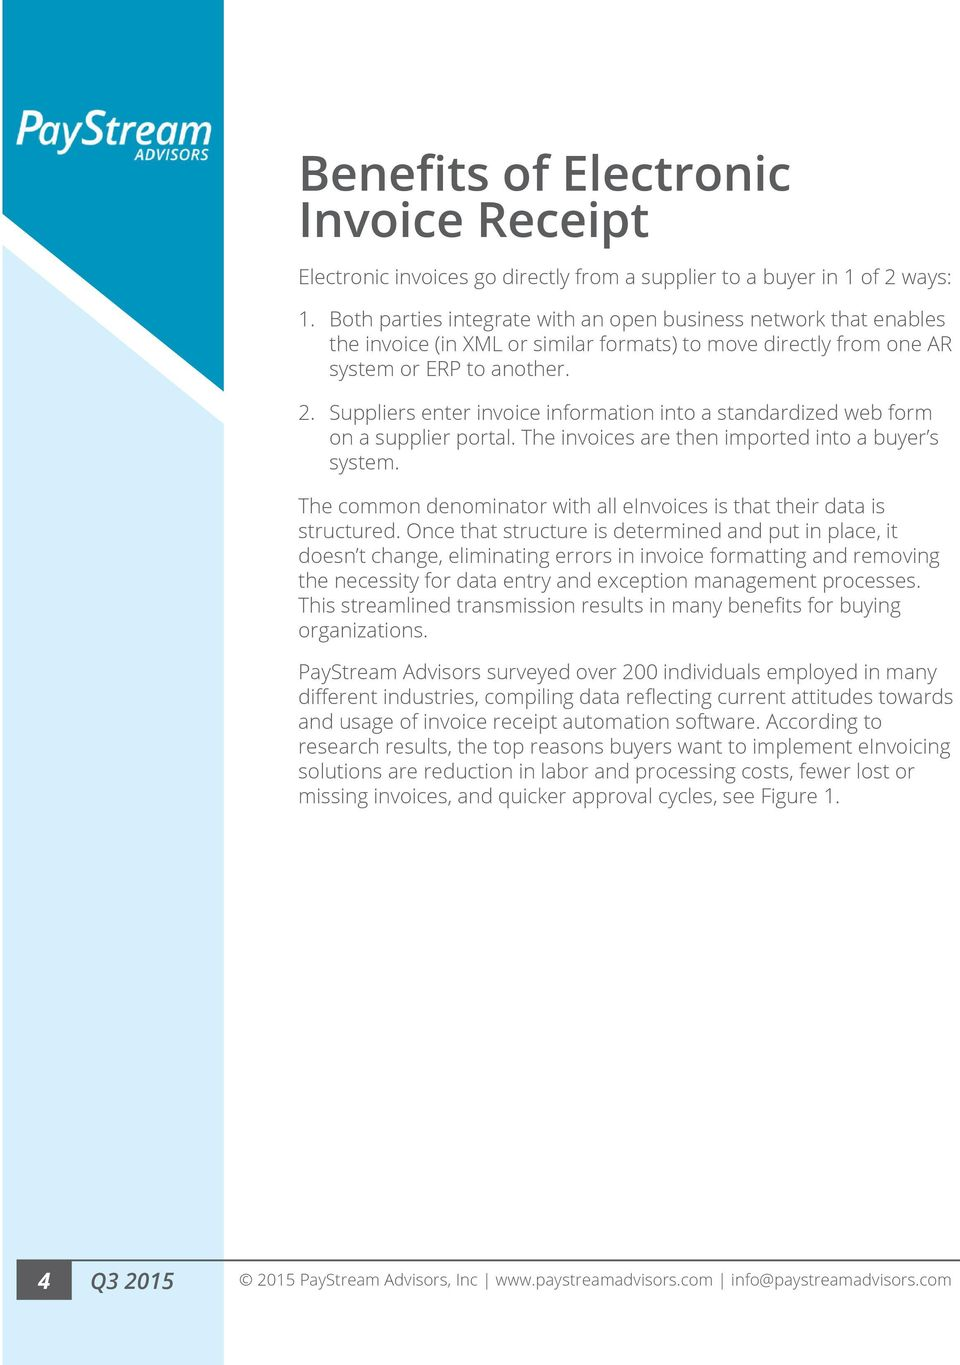 Suppliers enter invoice information into a standardized web form on a supplier portal. The invoices are then imported into a buyer s system.